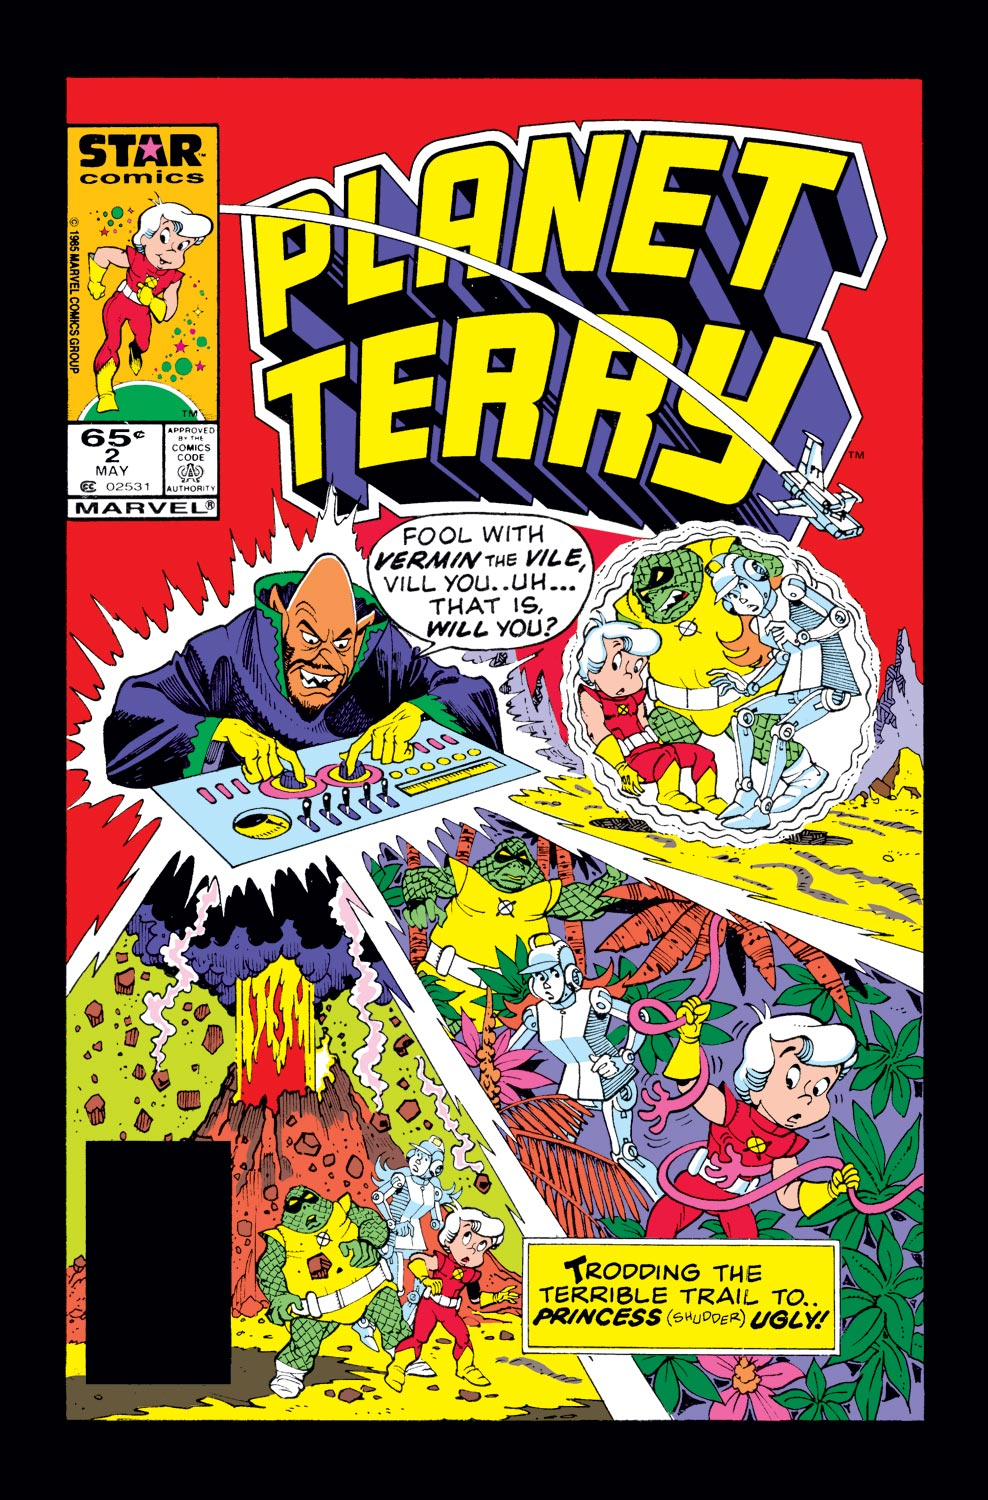 Planet Terry (1985) #2